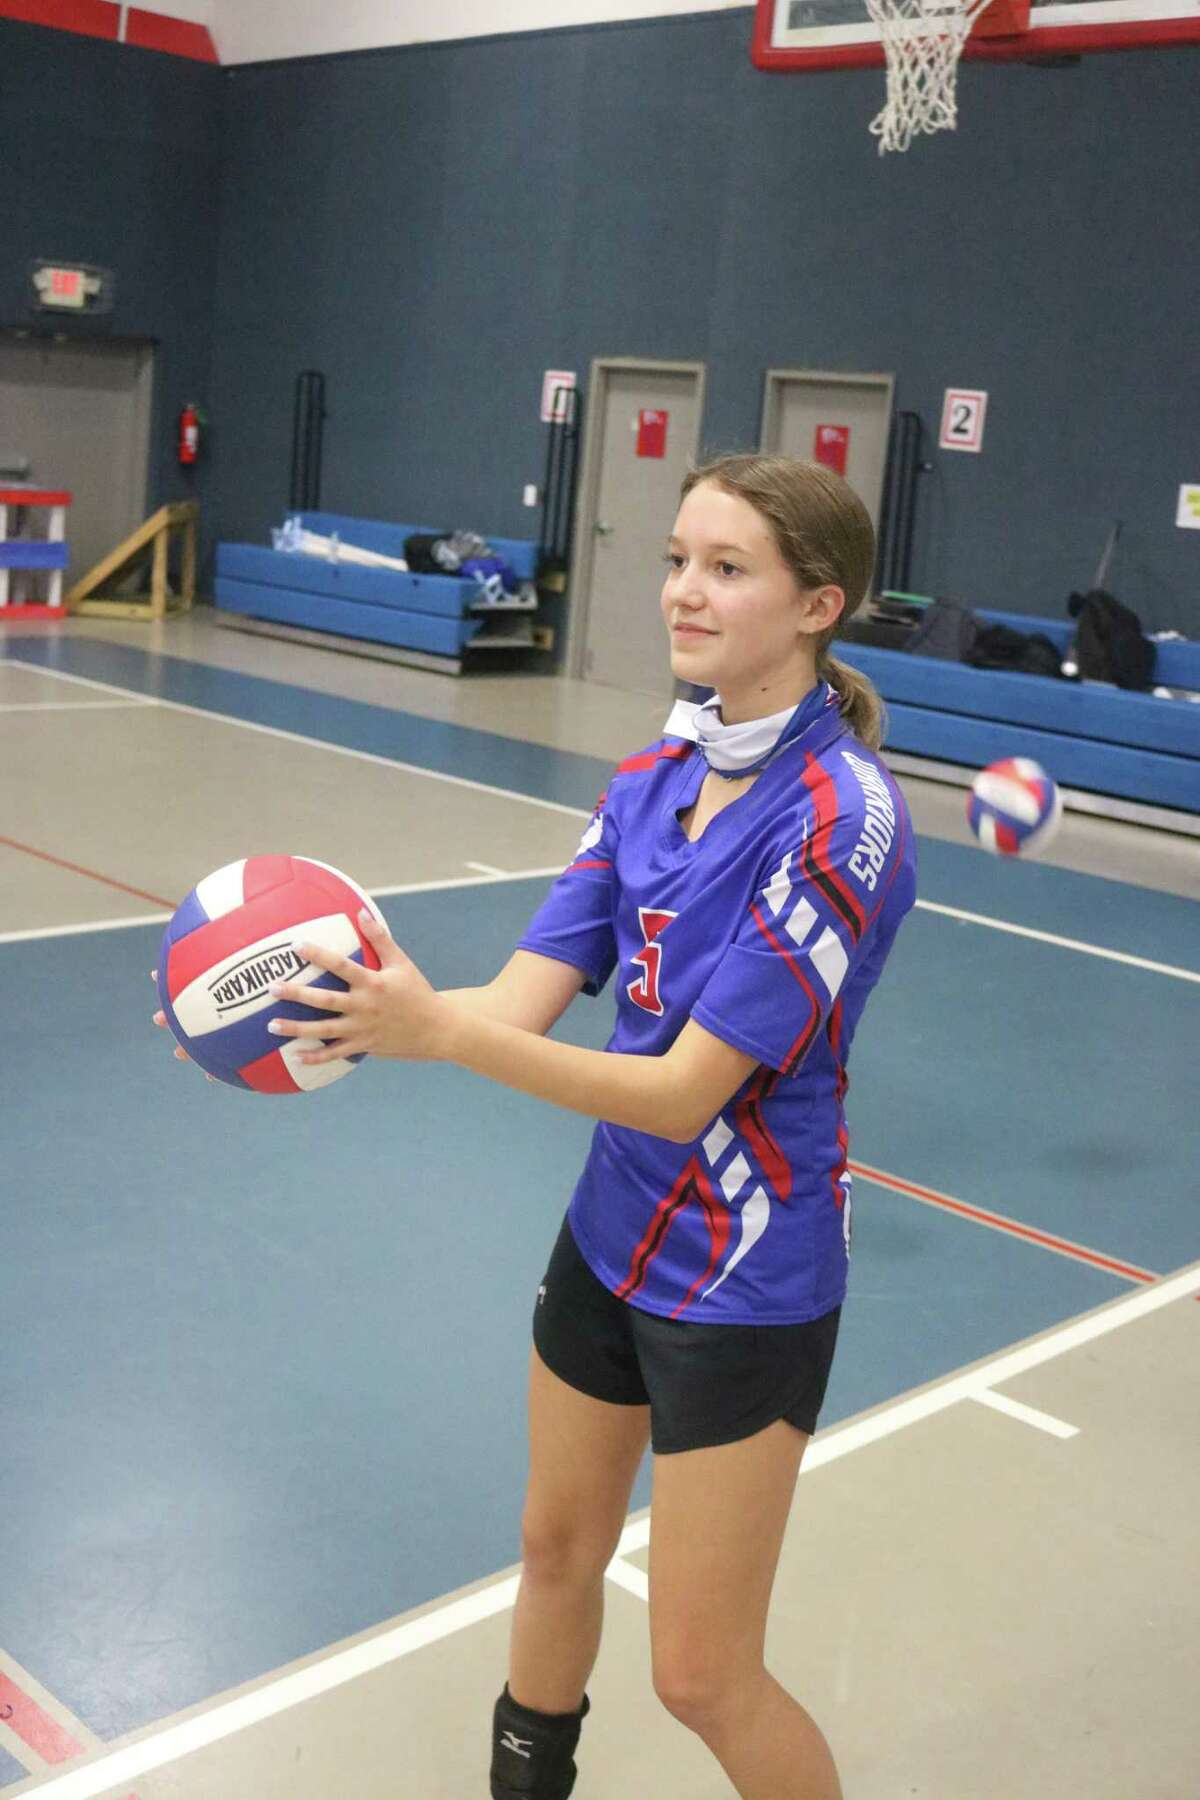 FBCA eighth grader Hayleigh Evans played a strong overall match in Port Arthur Monday night, especially in the passing department.